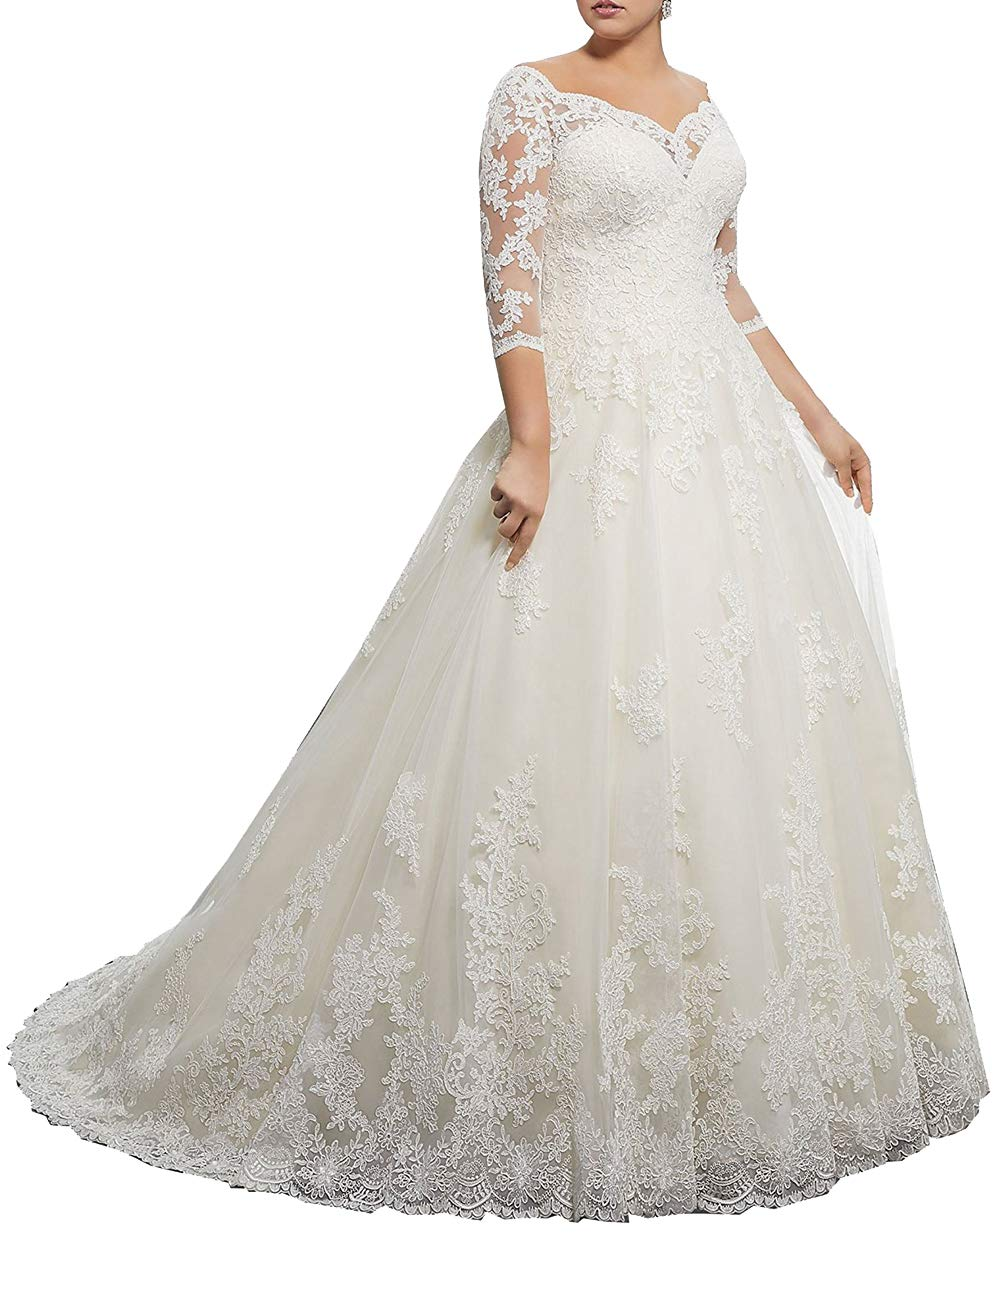 Wedding Dress Lace Bridal Dresses with Long Sleeves Plus Size Wedding Gown